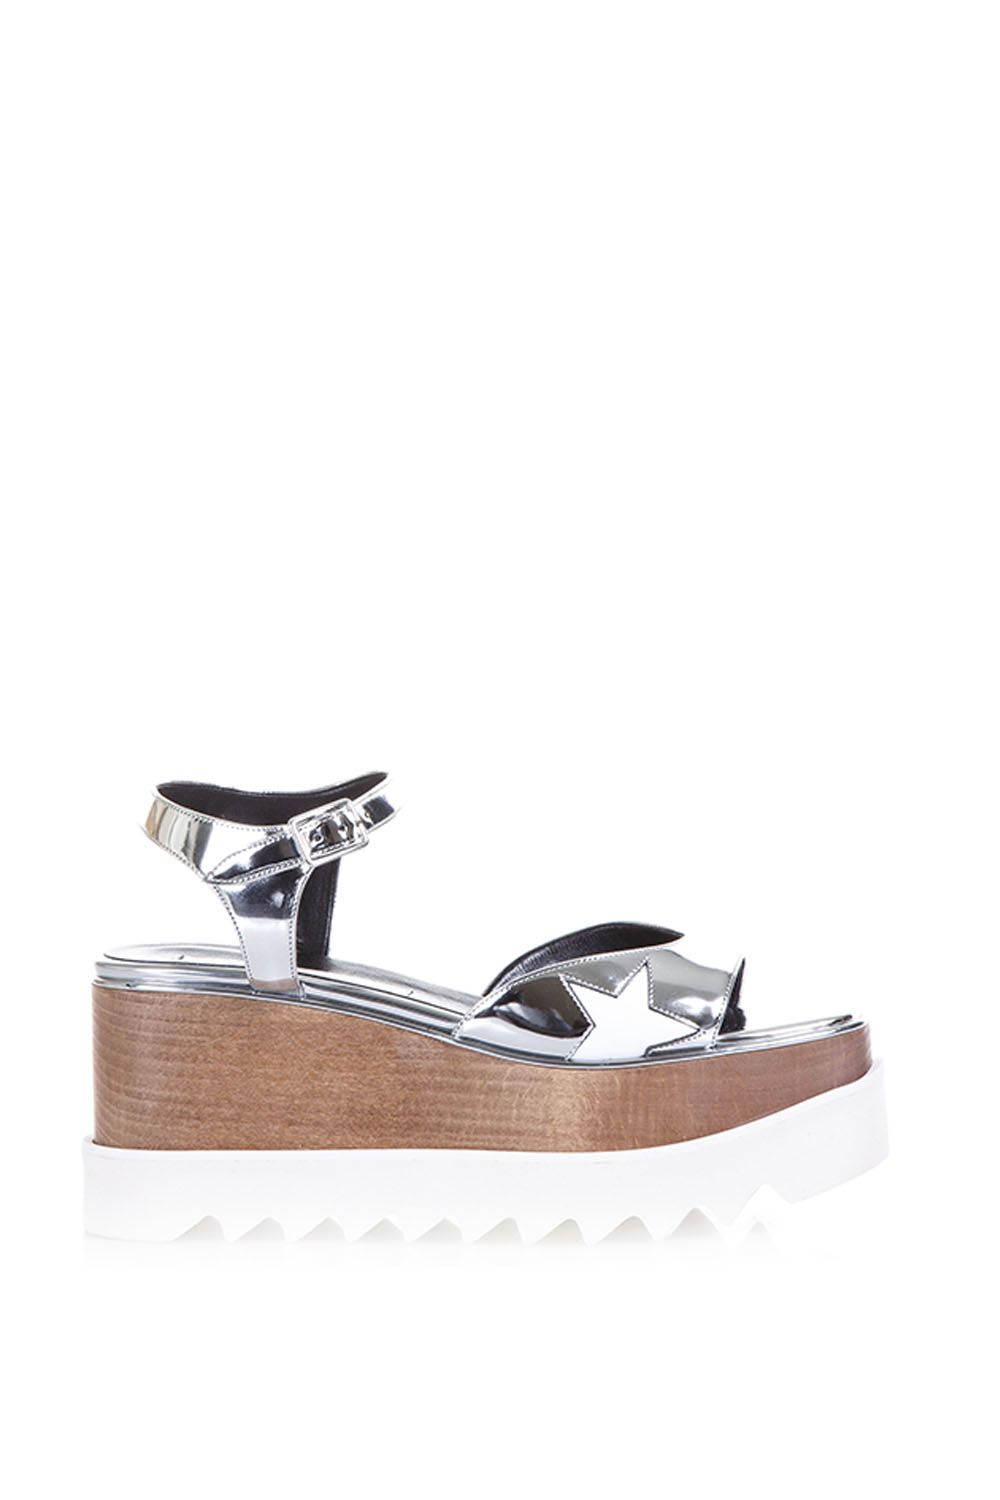 b56b4f845c9f Stella McCartney Stella McCartney Elyse Faux Metallic Leather ...